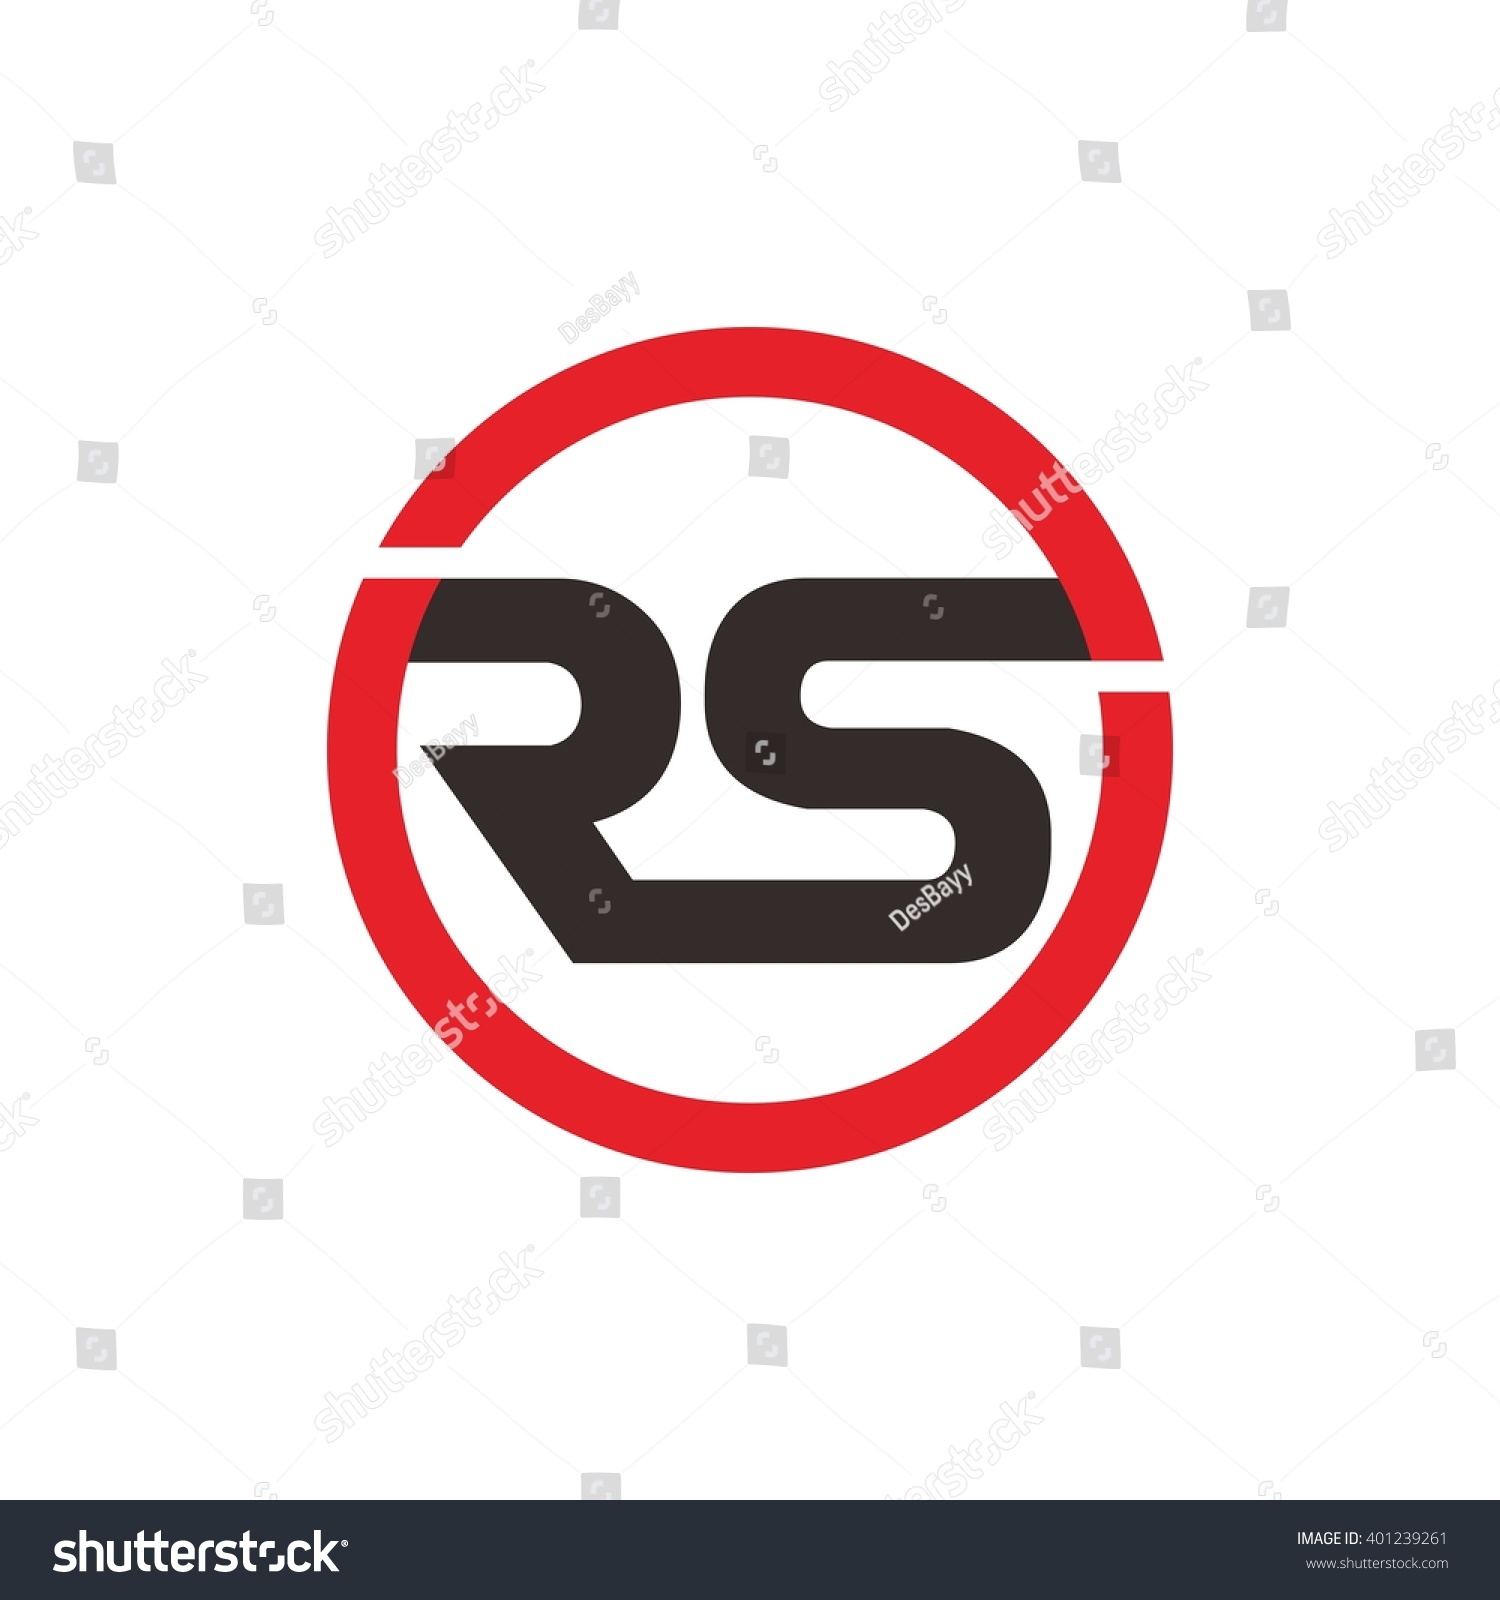 Rs logo stock vector 401239261 shutterstock rs logo buycottarizona Image collections